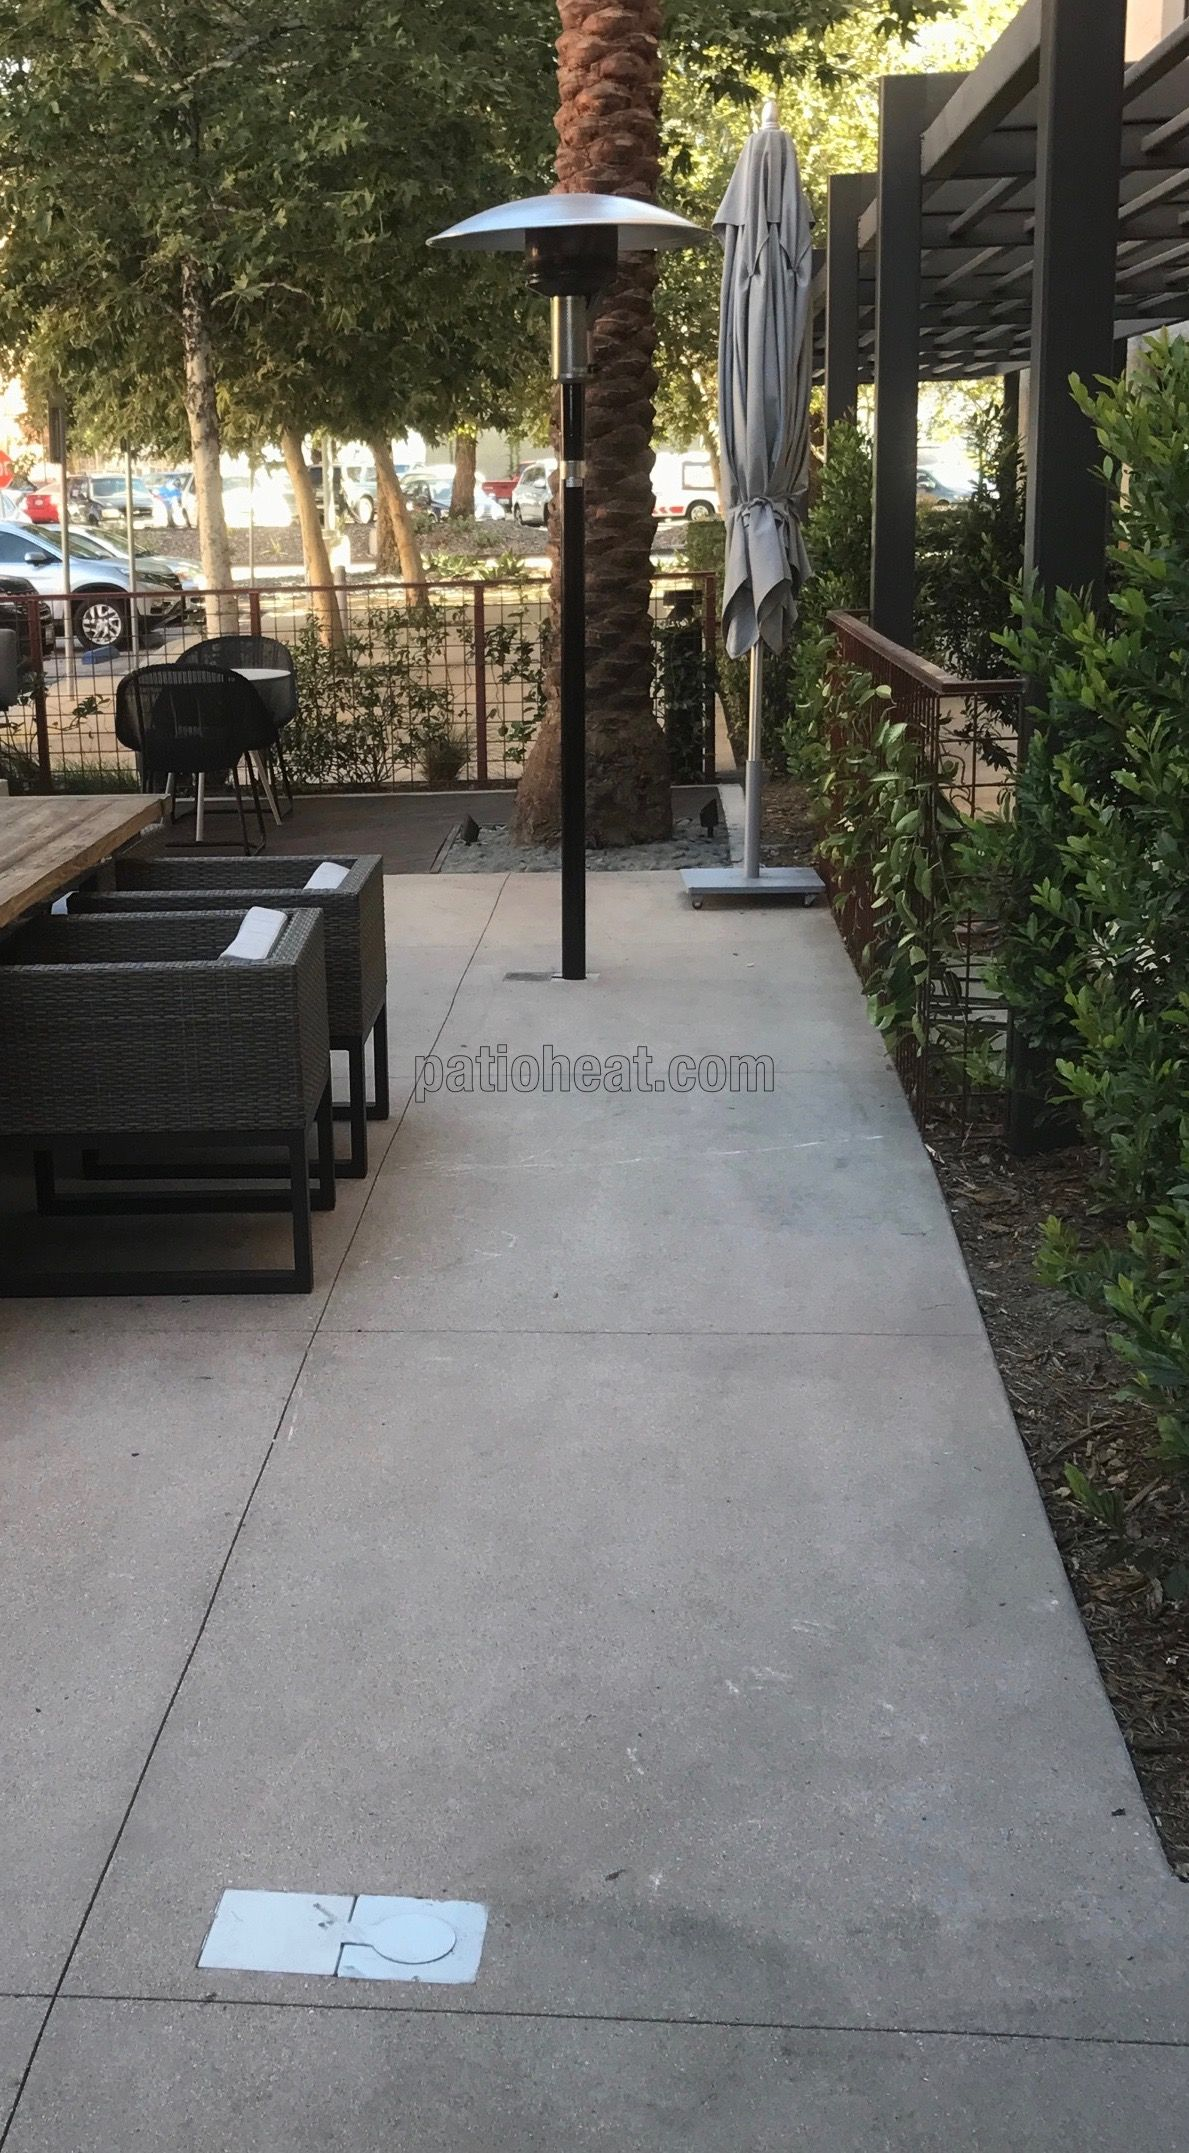 This hotel has installed Sunglo PSA265 patio heaters and Tropic Heating's patio  heater flush underground vault boxes. The vault box noted without the heater  ... - This Hotel Has Installed Sunglo PSA265 Patio Heaters And Tropic